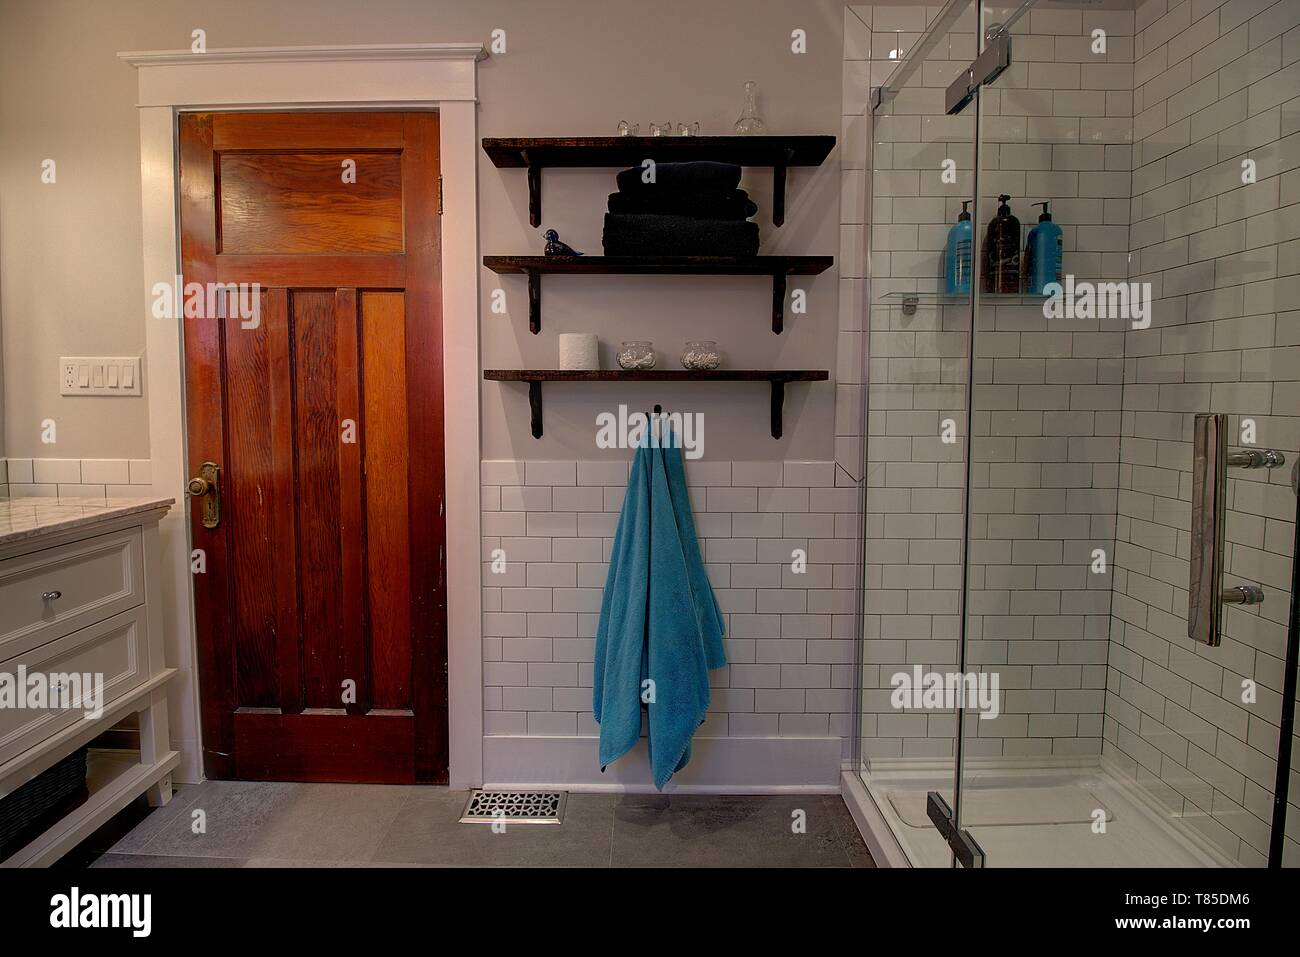 Modern bathroom renovation with subway tile and old wood door. Upadte home decor. - Stock Image